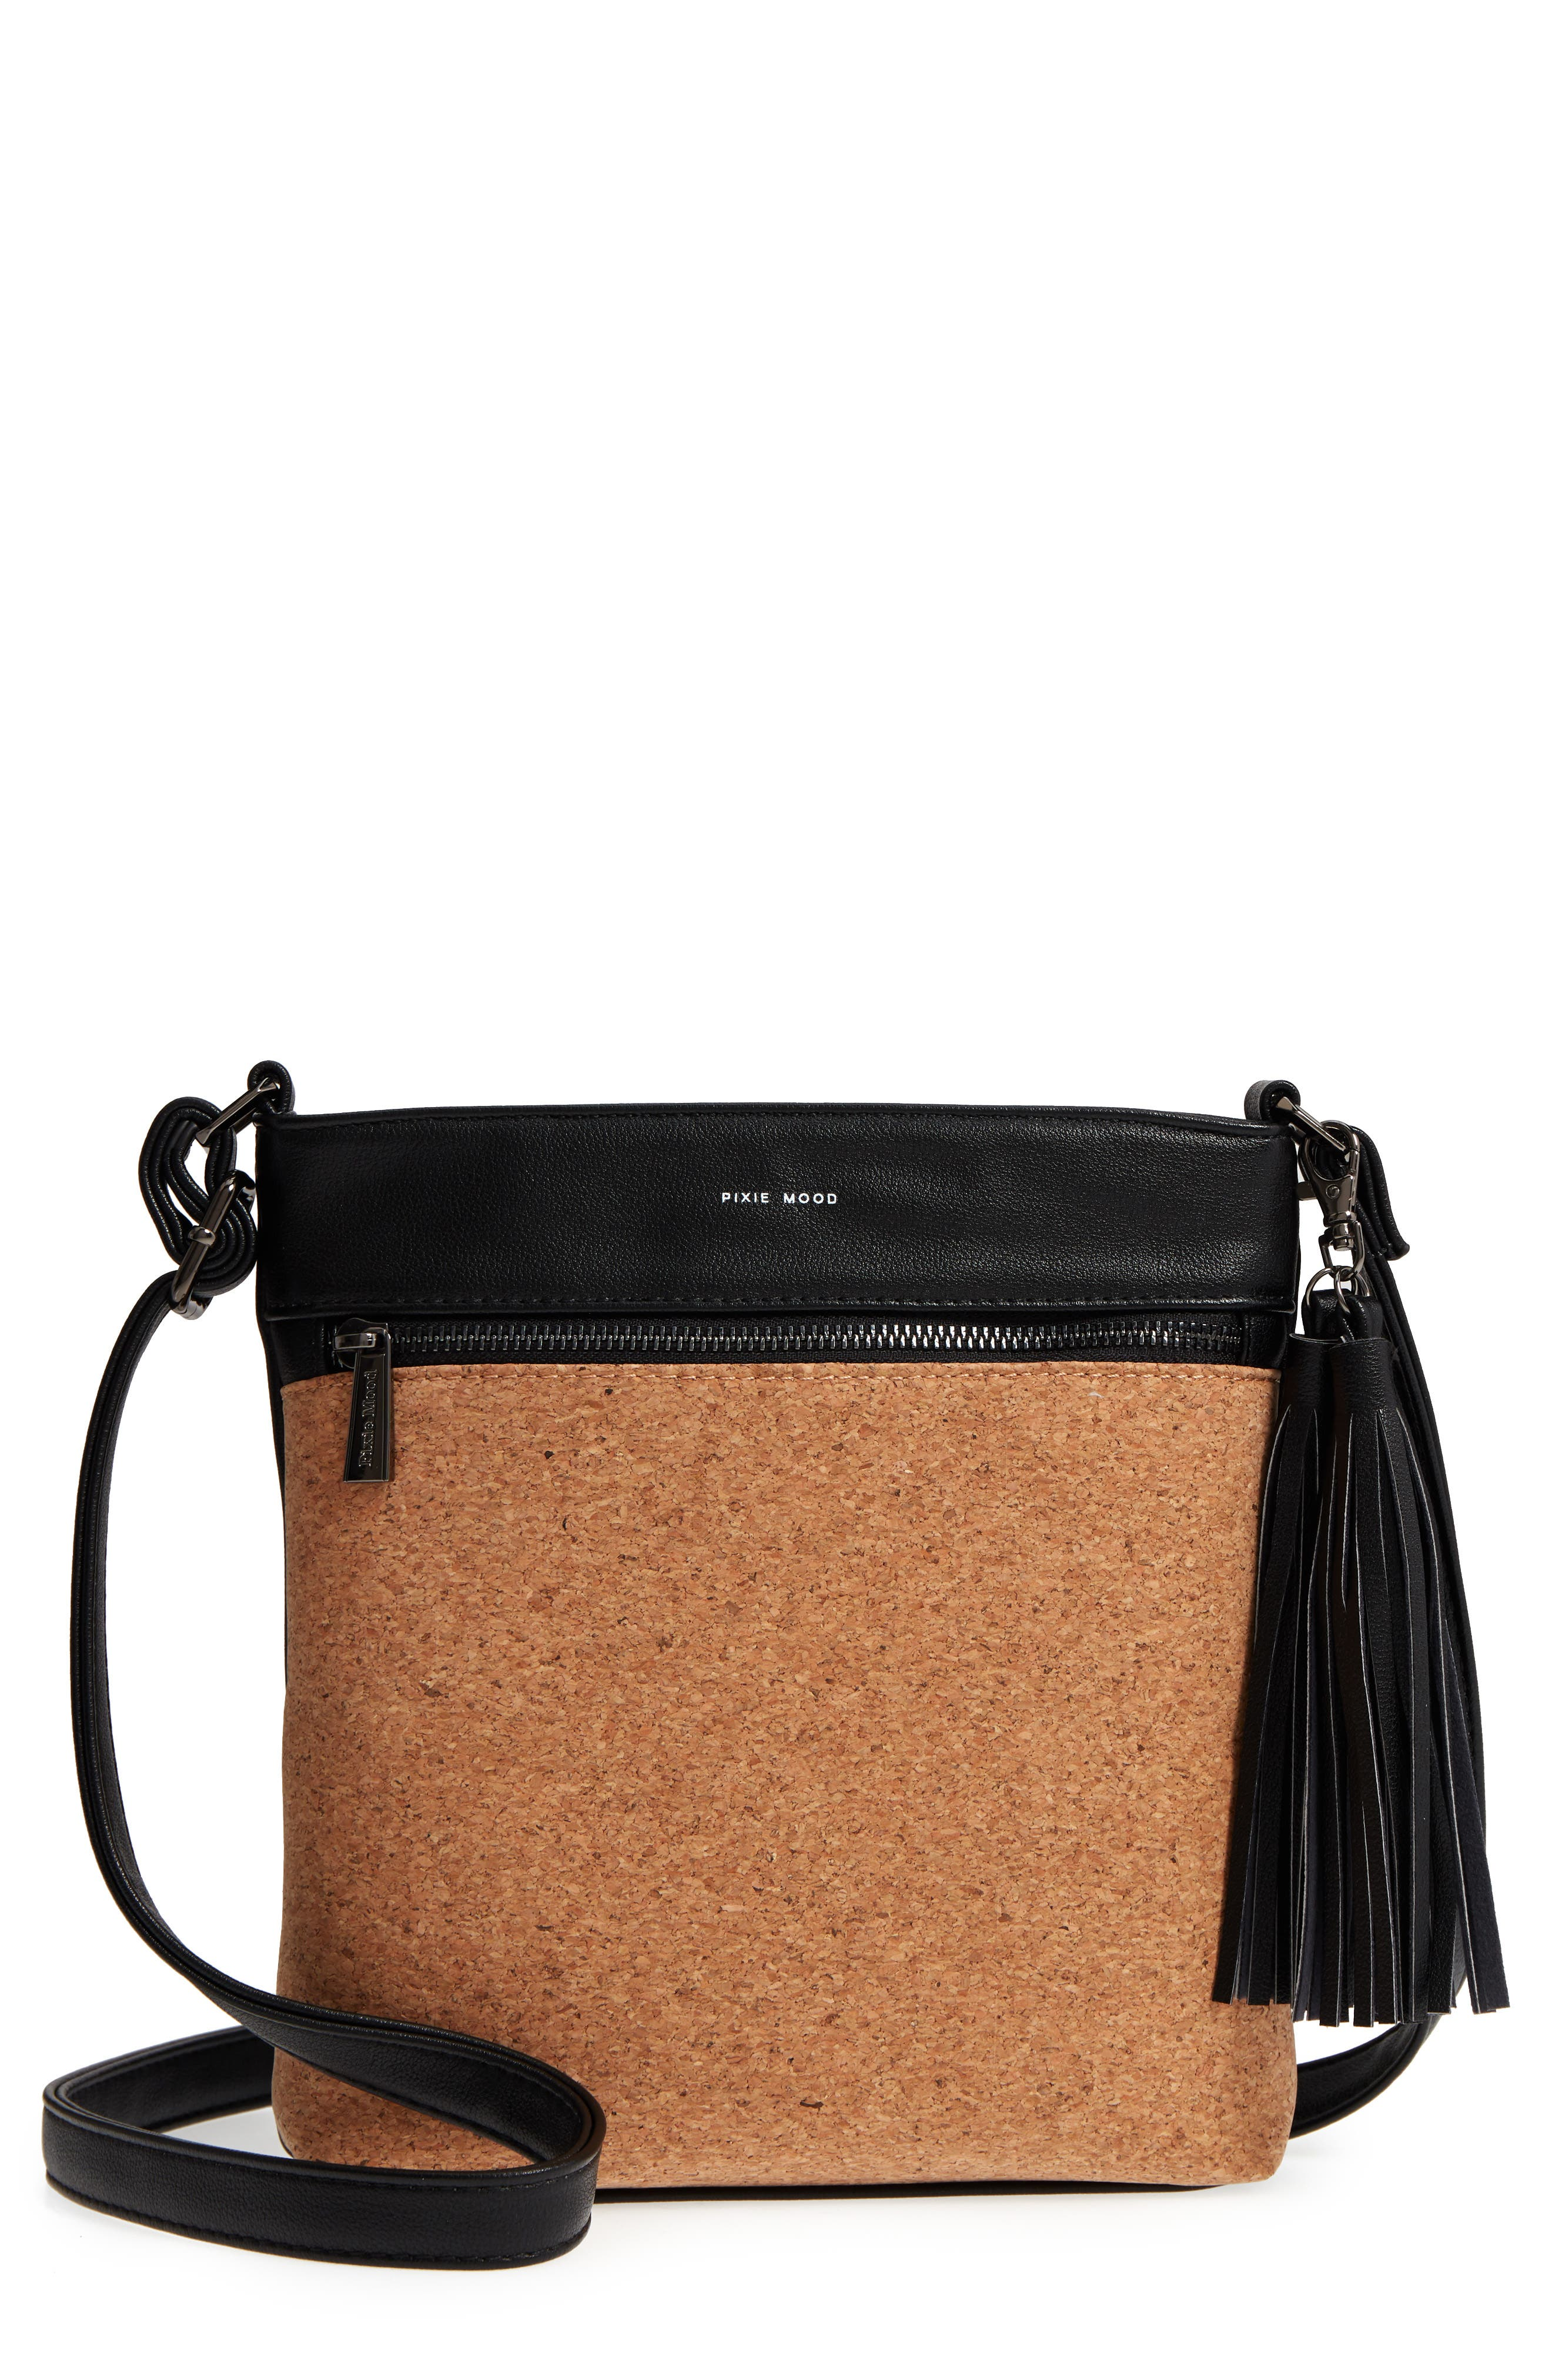 Pixie Mood Claudia Faux Leather Crossbody Bag